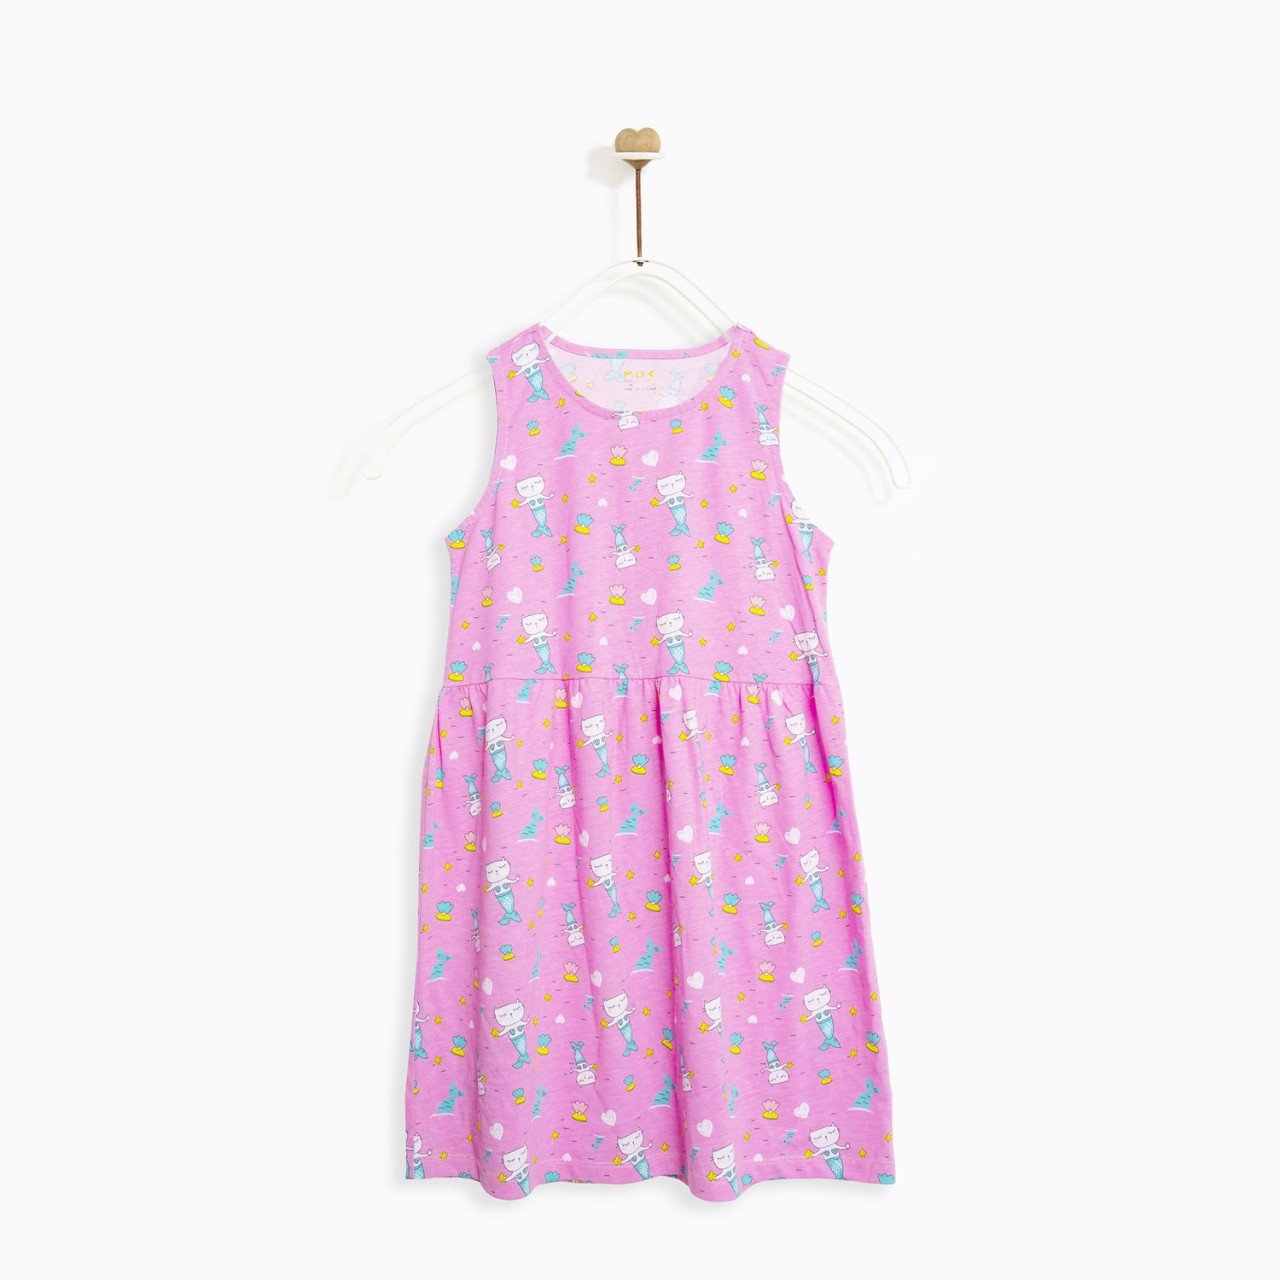 Đầm bé gái - Relaxed sleeveless dress